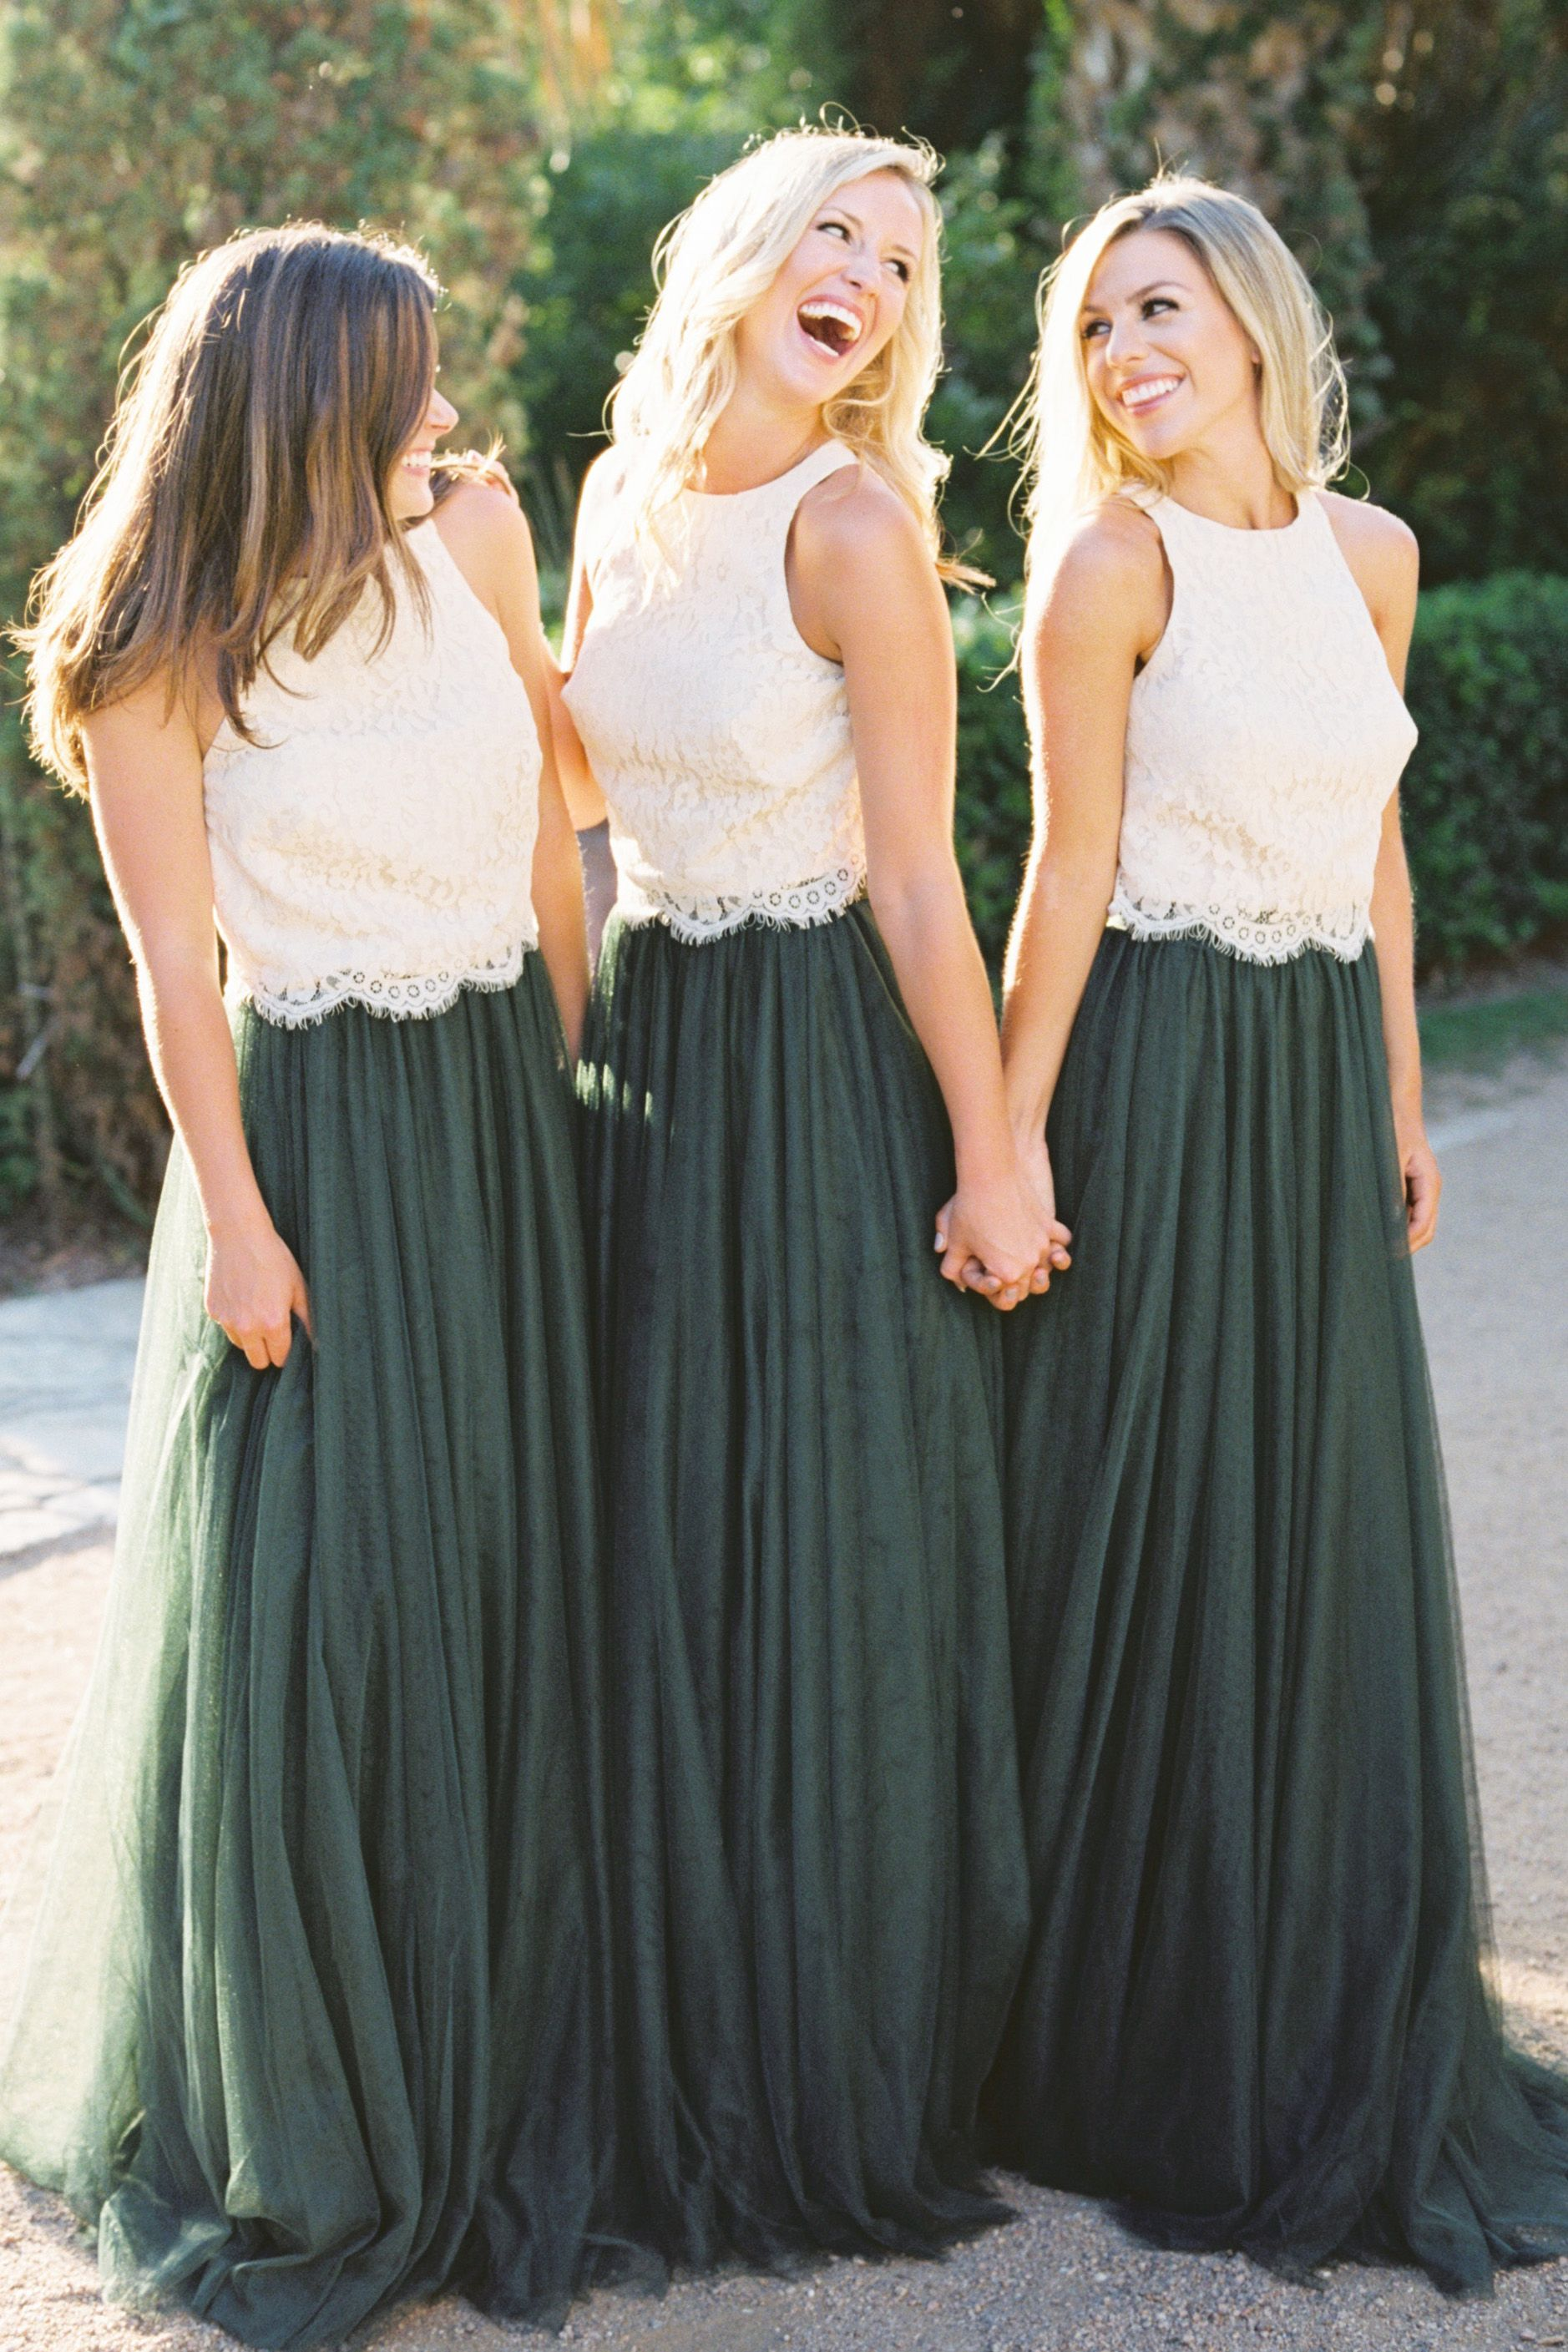 c1852e1cd5 Bridesmaid dresses and separates from the leading ecommerce bridesmaid dress  company. Try any style before you buy with our at home sample box program.